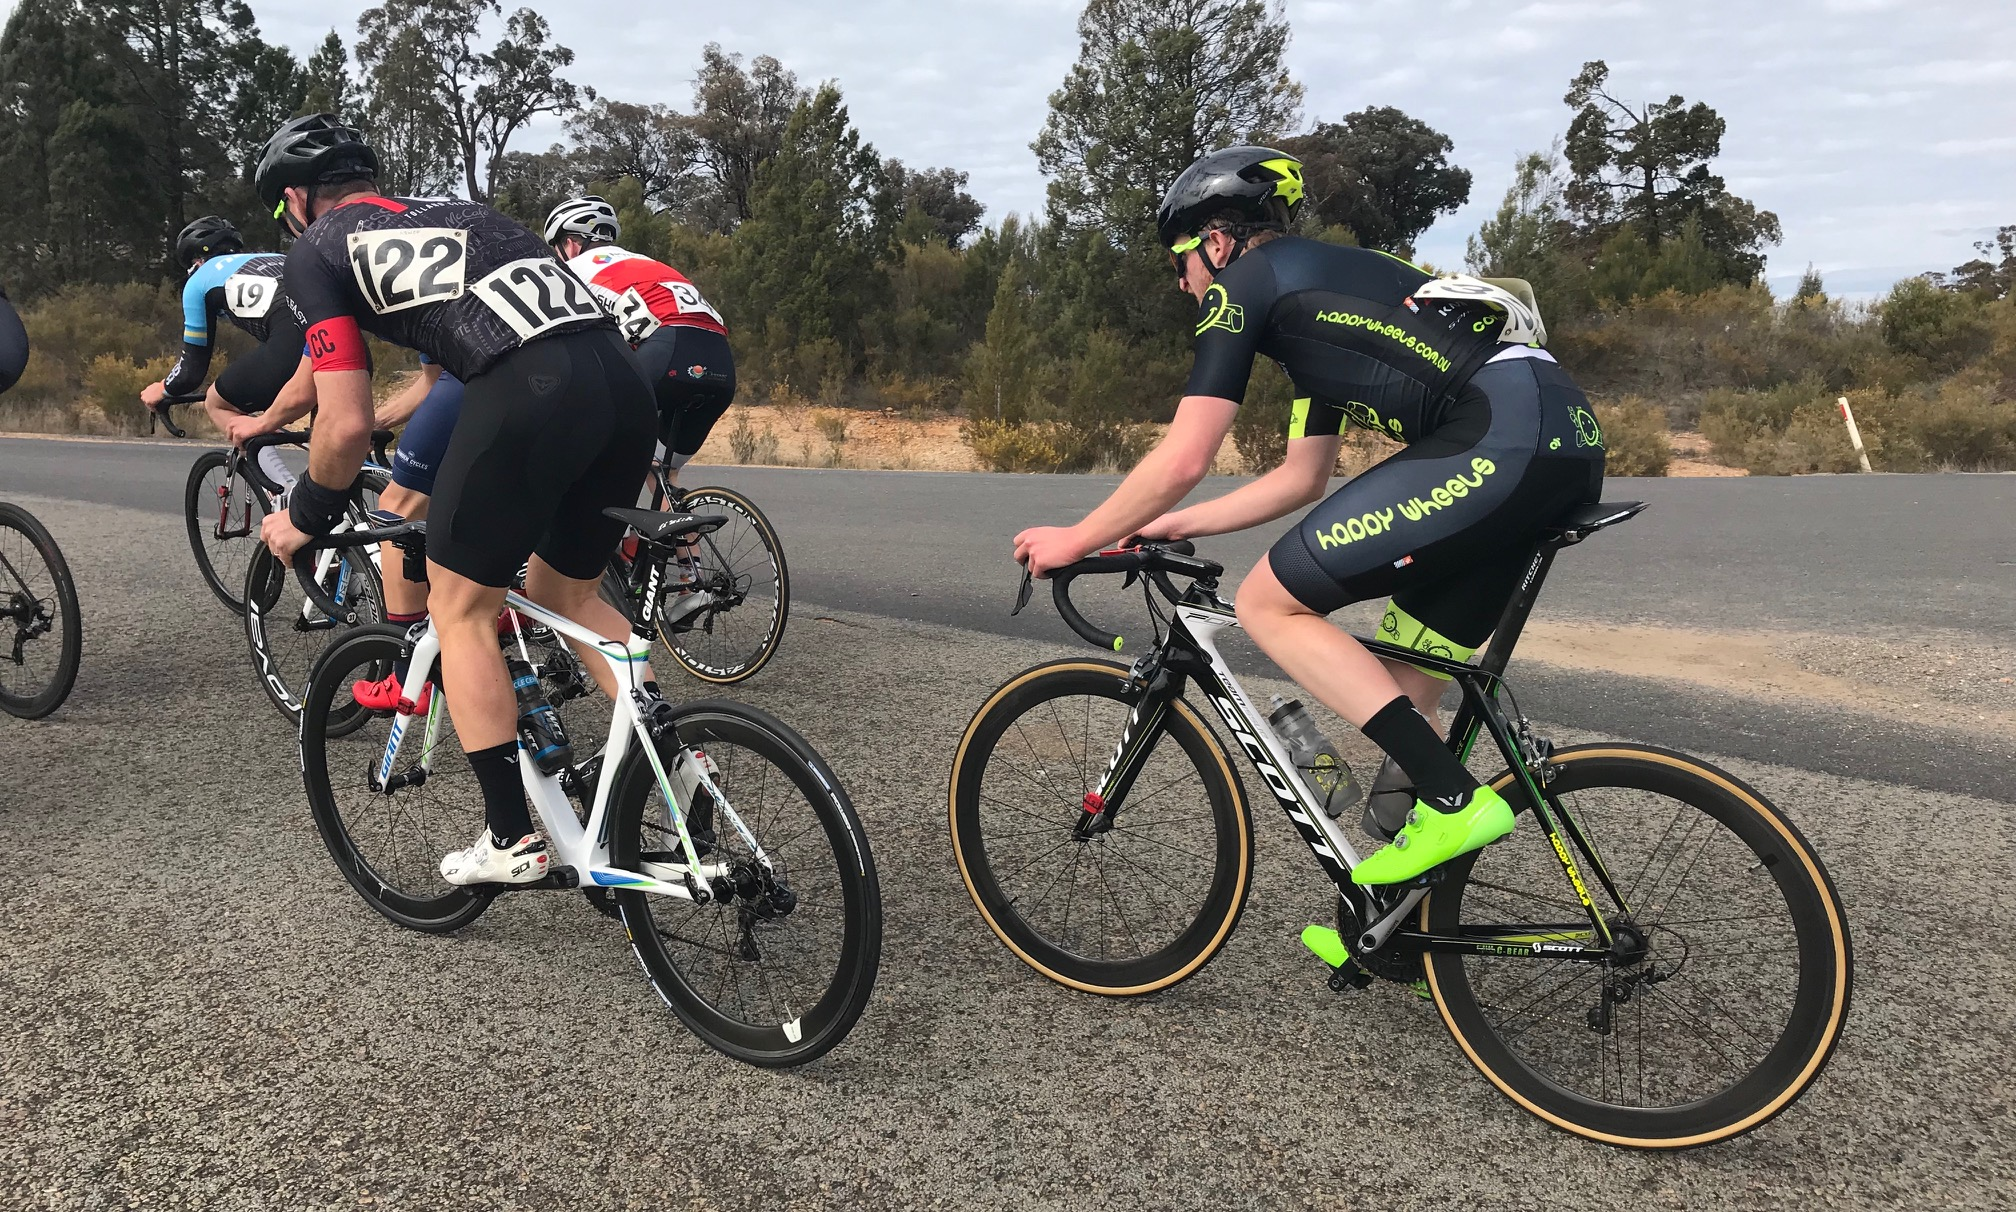 """Cootamundra 80k Scratch Race @ 18 August - Conor Tarlington finished 15th in Division 2 in heavy crosswinds that made """"gutter grovelling"""" the order of the day"""